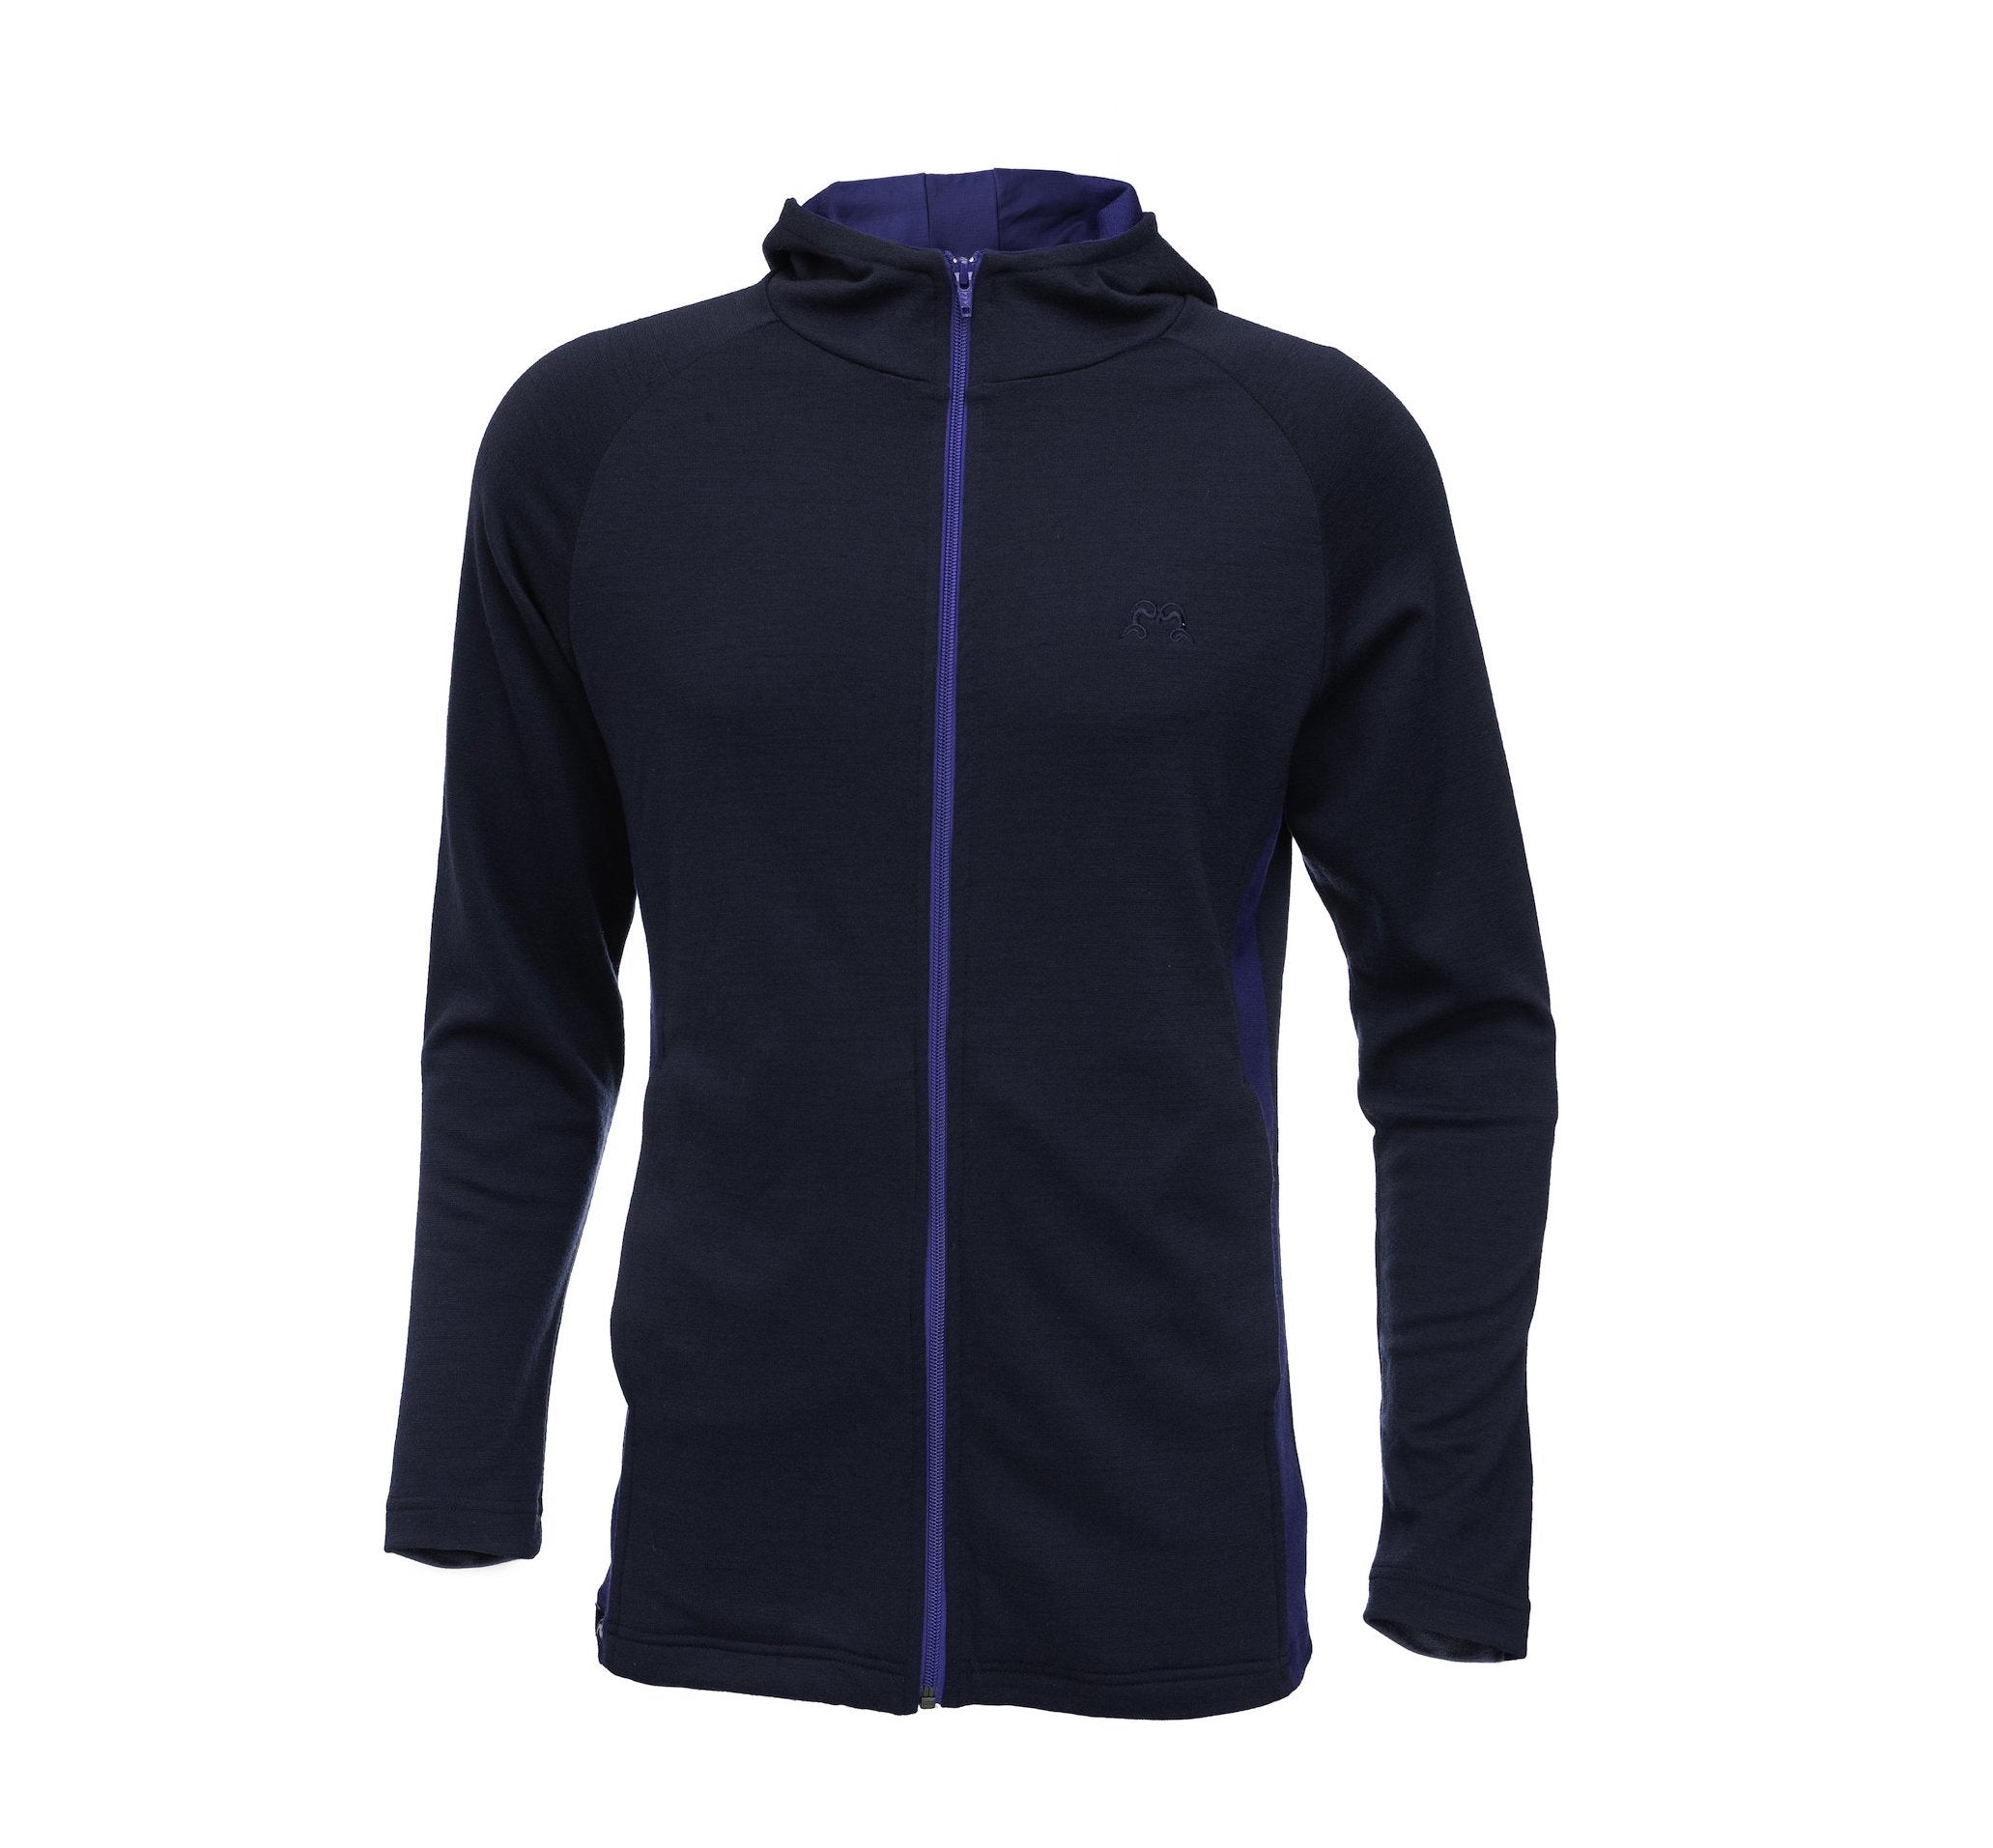 Men's Merino Wool Akaroa Long Sleeve Zip Hoodie - Navy & Indigo